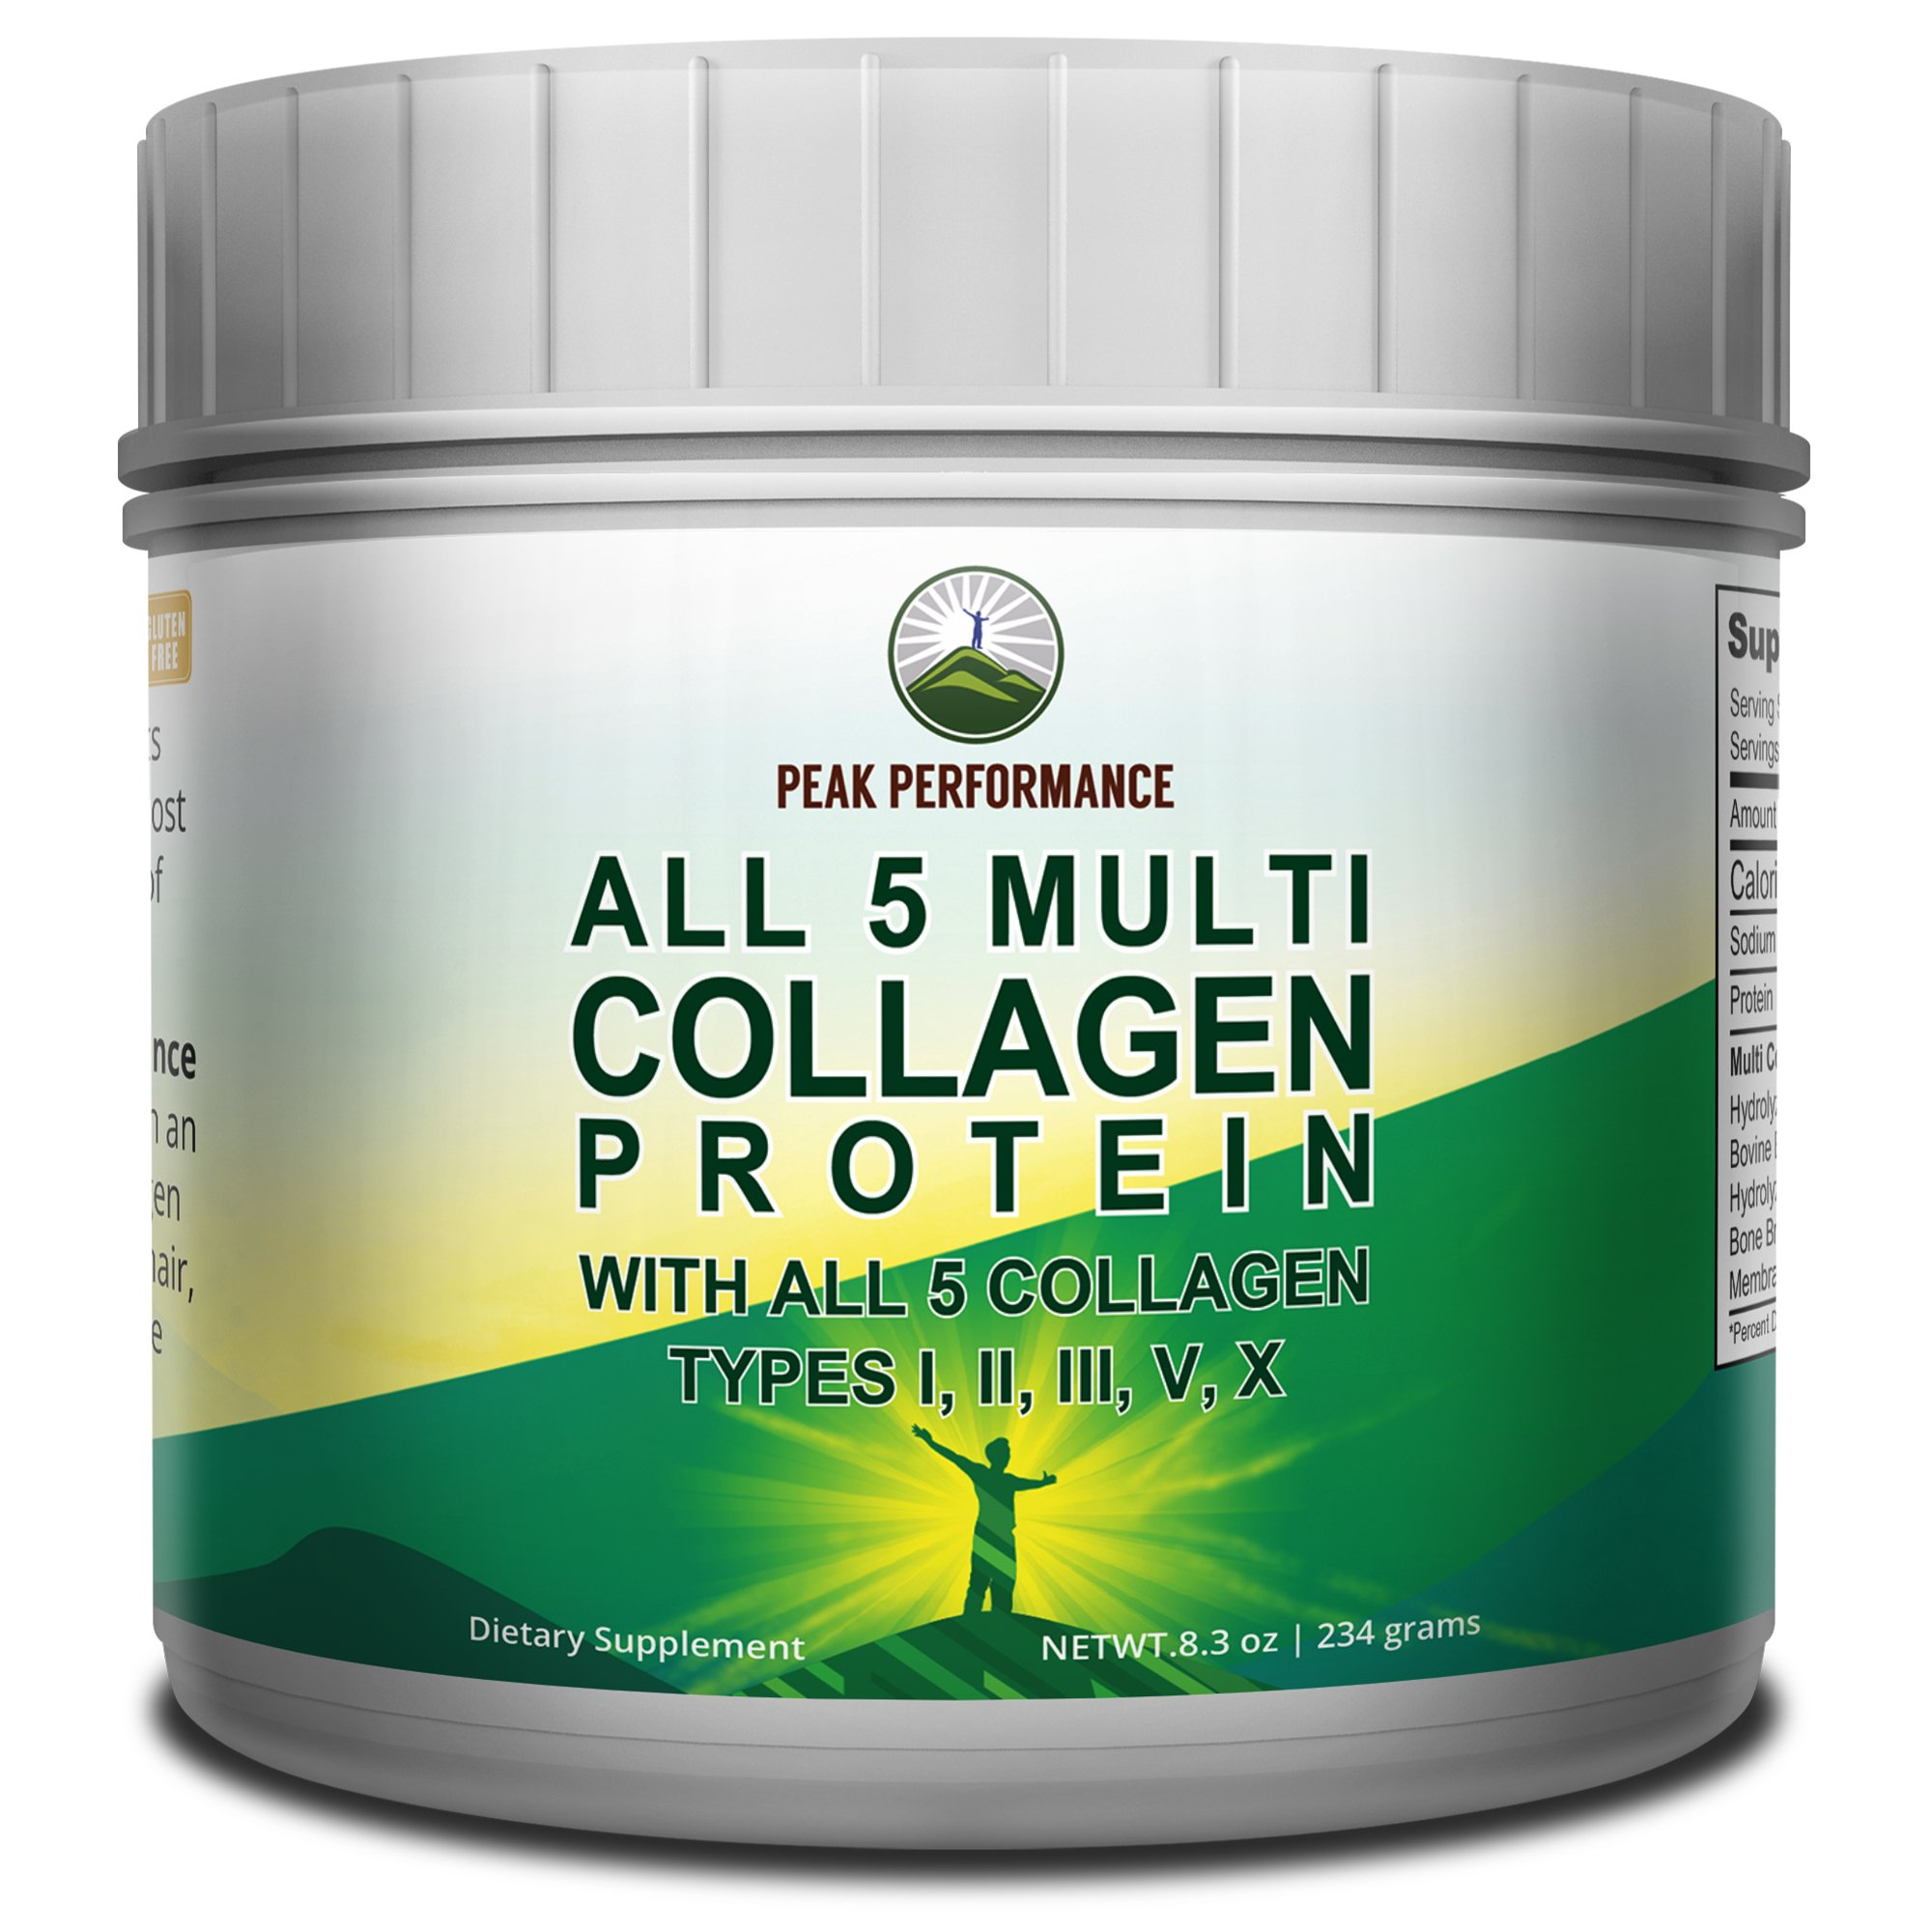 Unflavored Multi Collagen Protein Powder/Peptides by Peak Performance. Multi-Collagen Contains All Types I, II, III,V, X   Keto Friendly with Hydrolyzed Bovine, Unflavored Multi Collagen